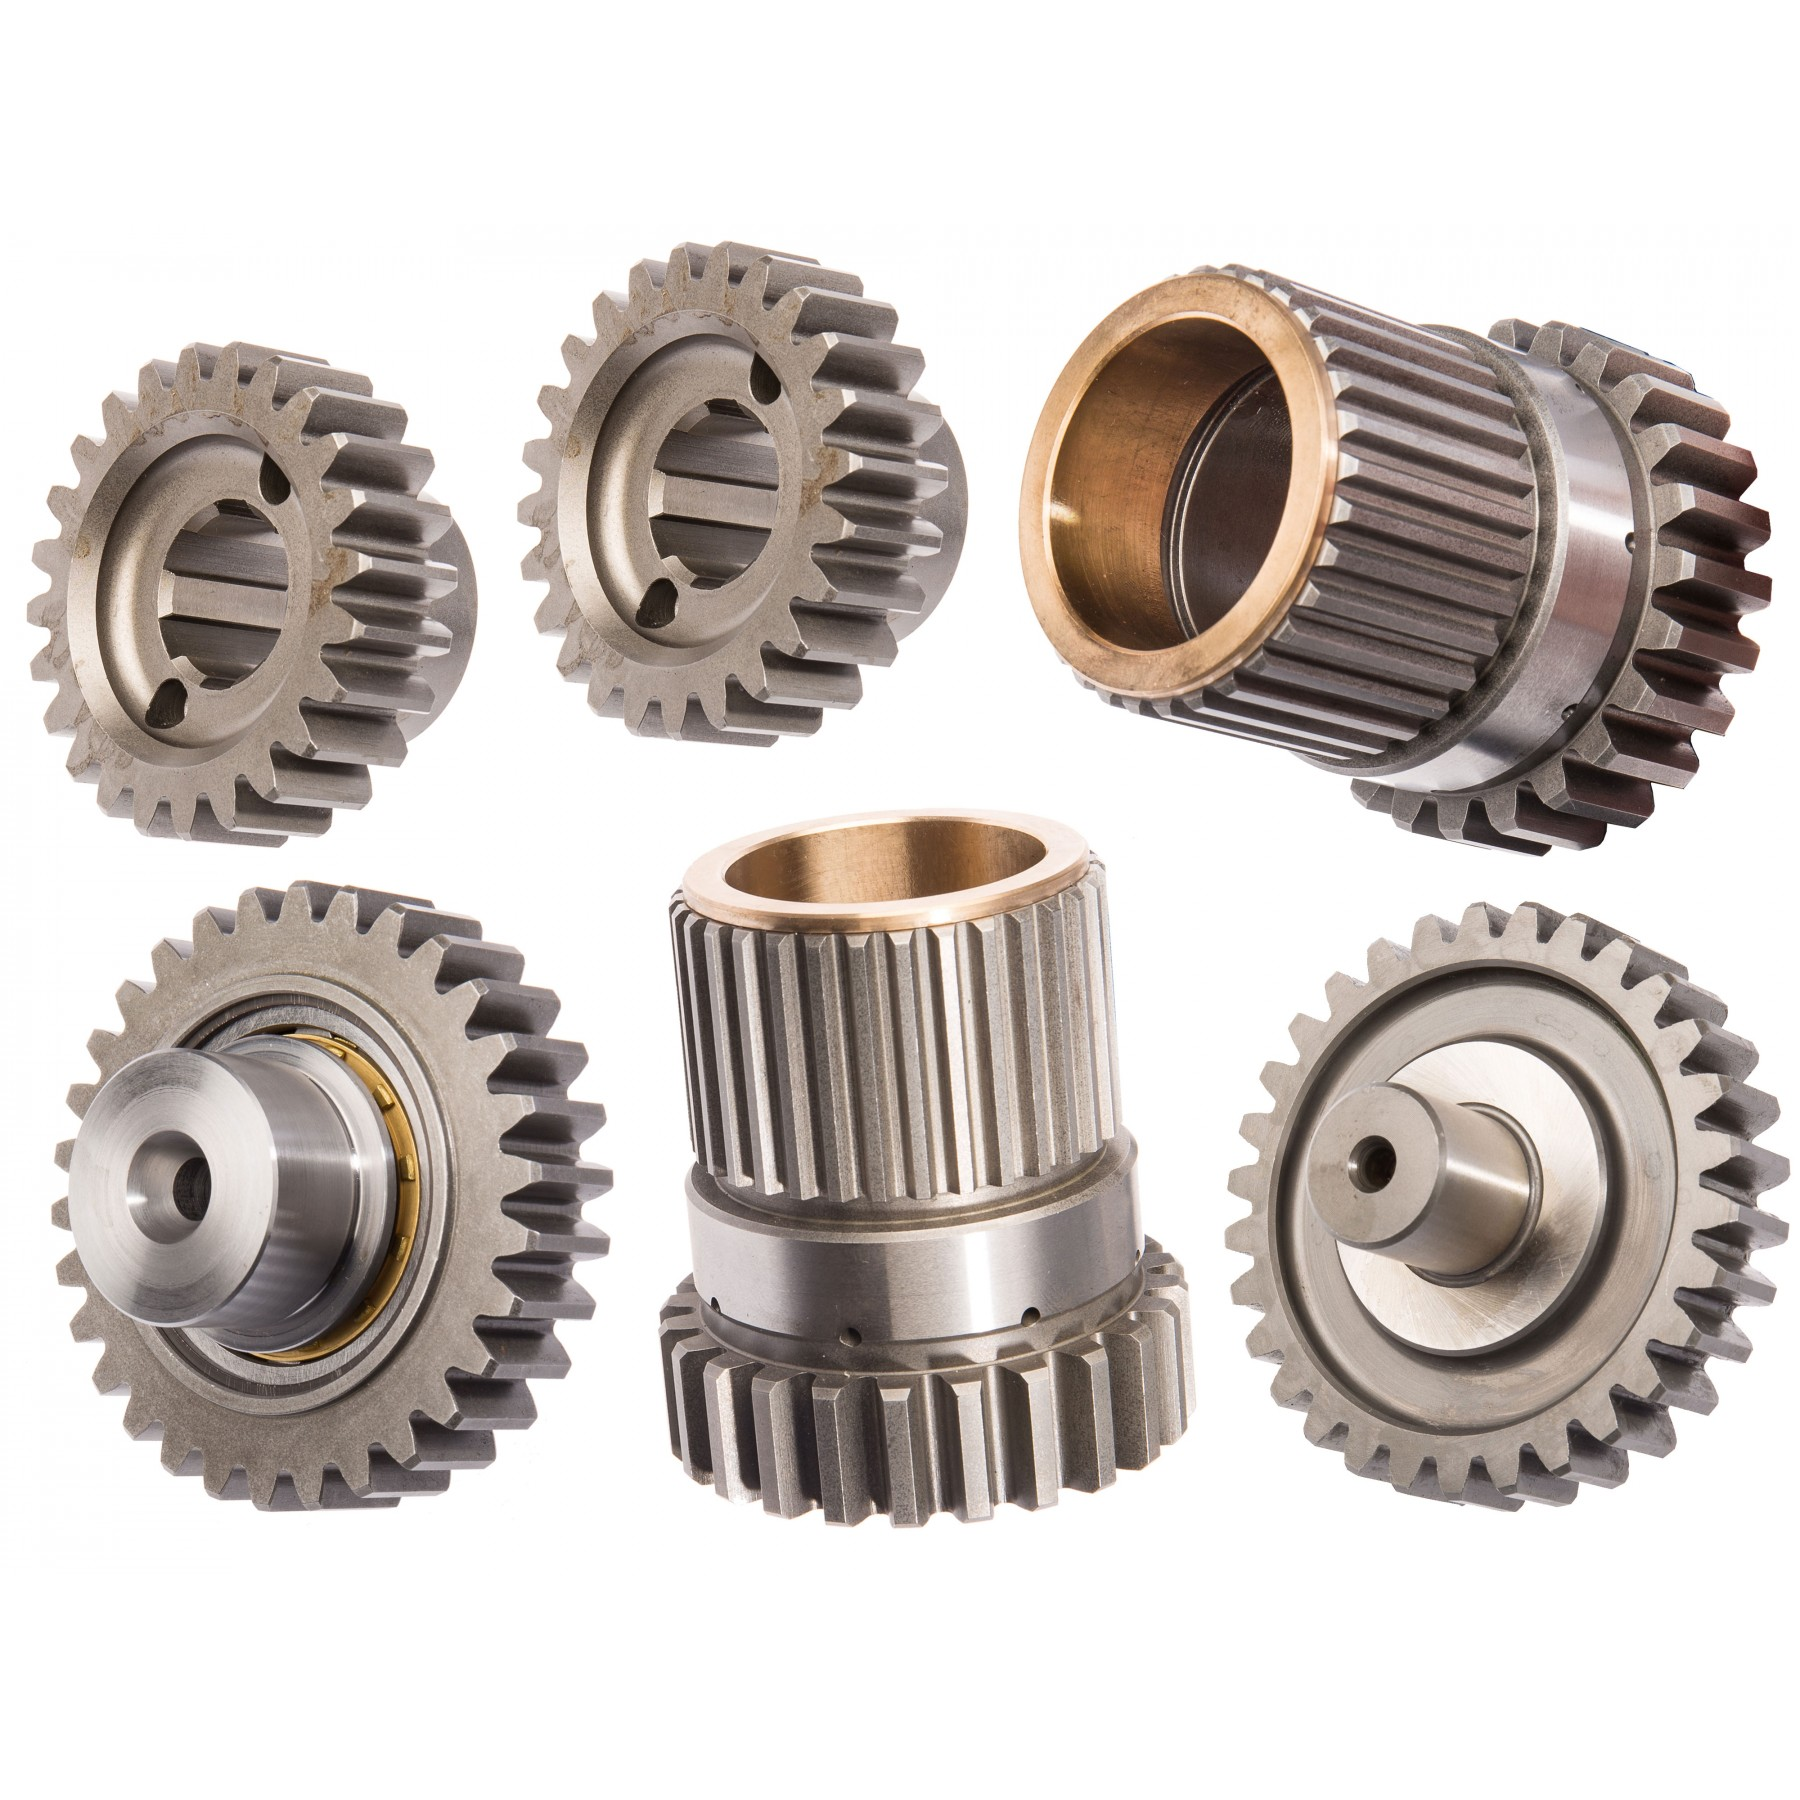 MED S/C DROP GEARS - INDIVIDUAL